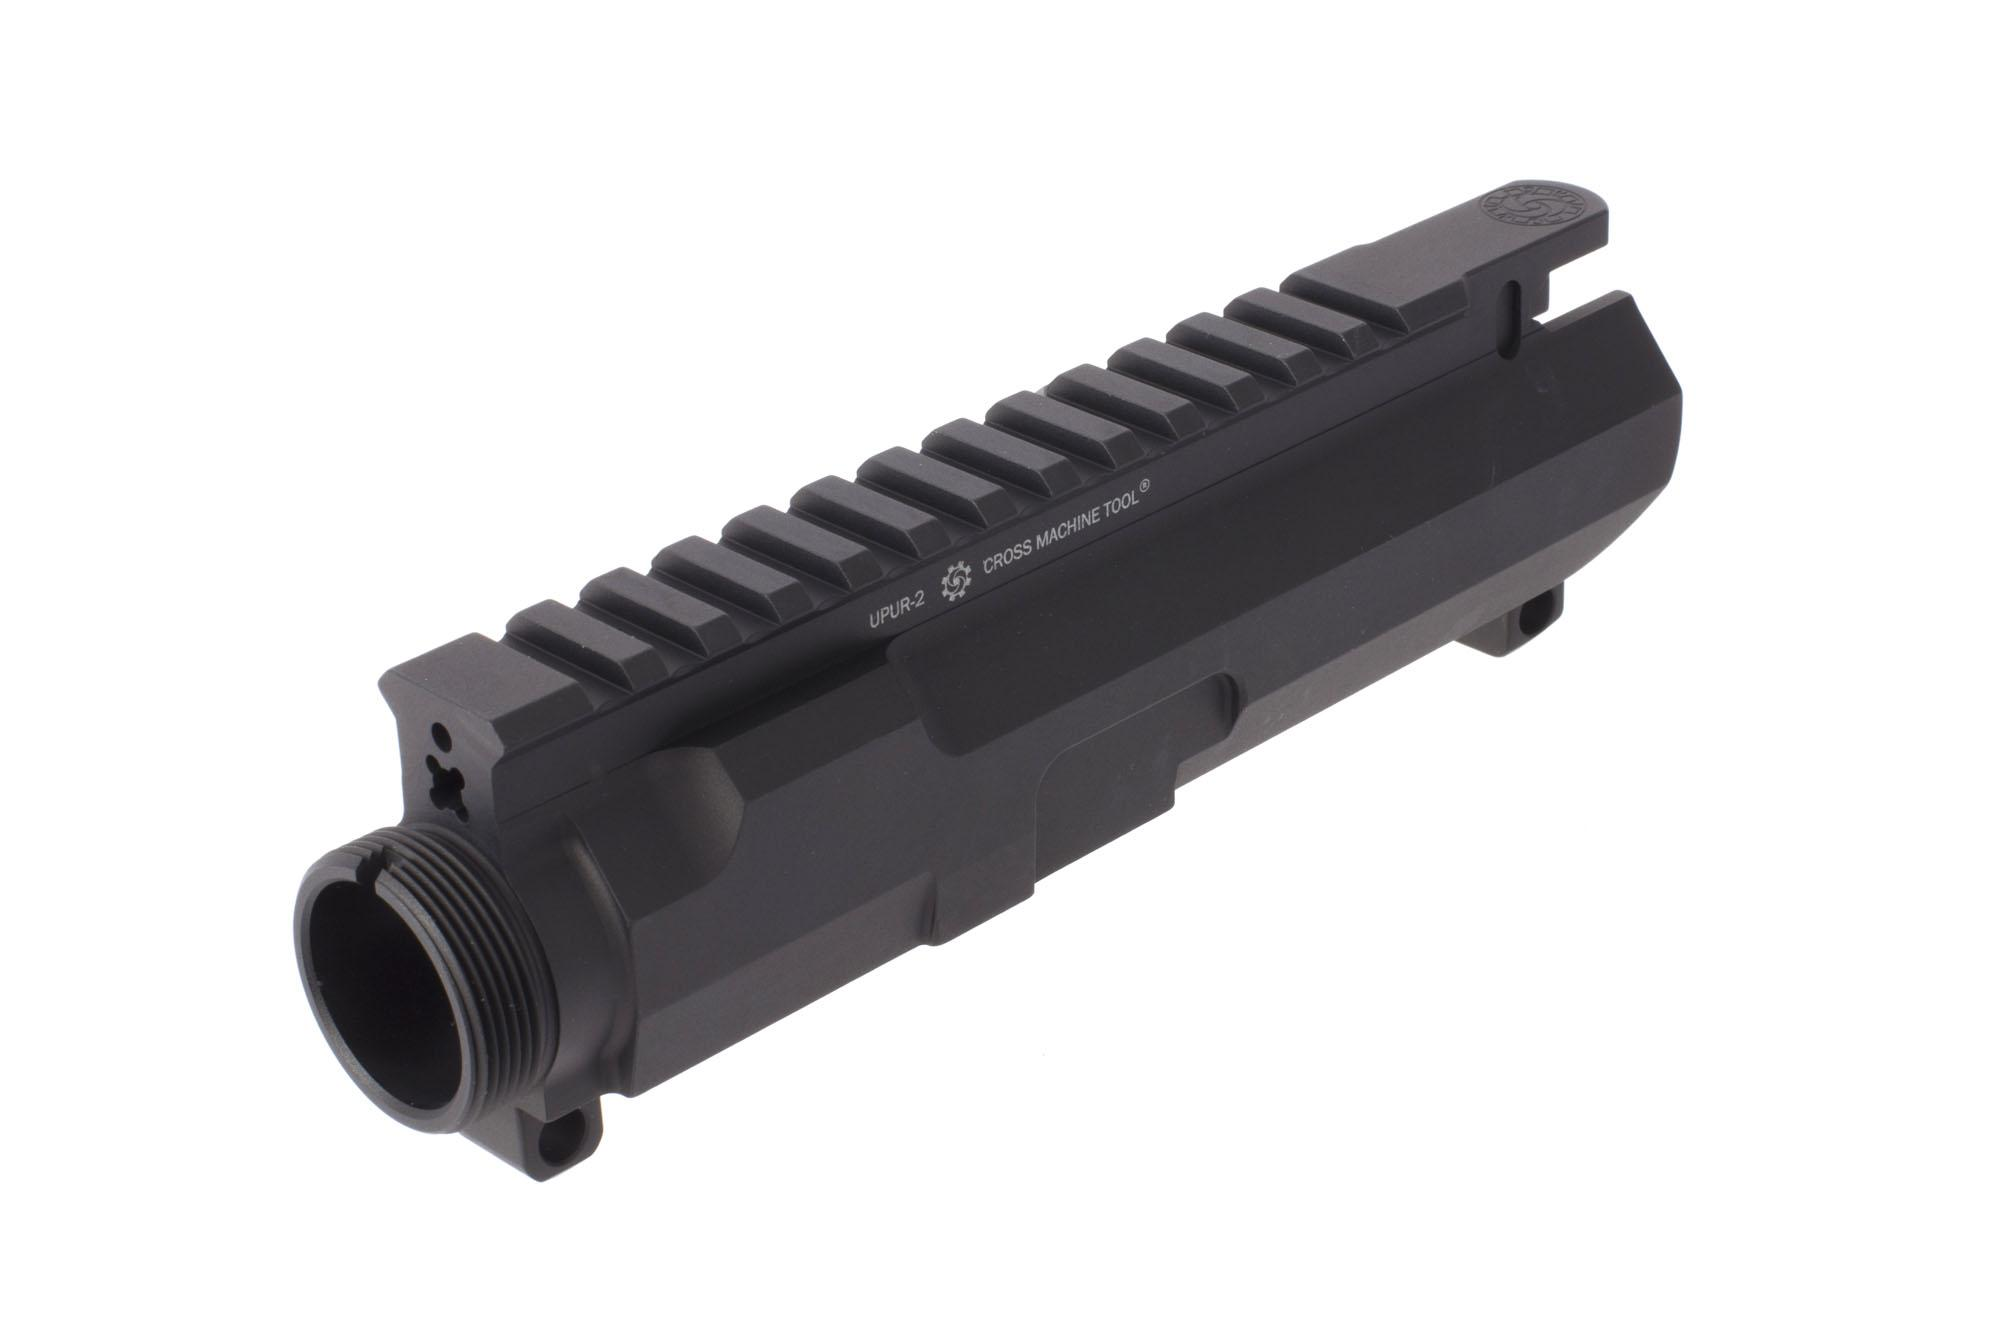 Cross Machine Tool's Ultra Precision stripped billet AR-15 upper receiver is compatible with most free float handguards